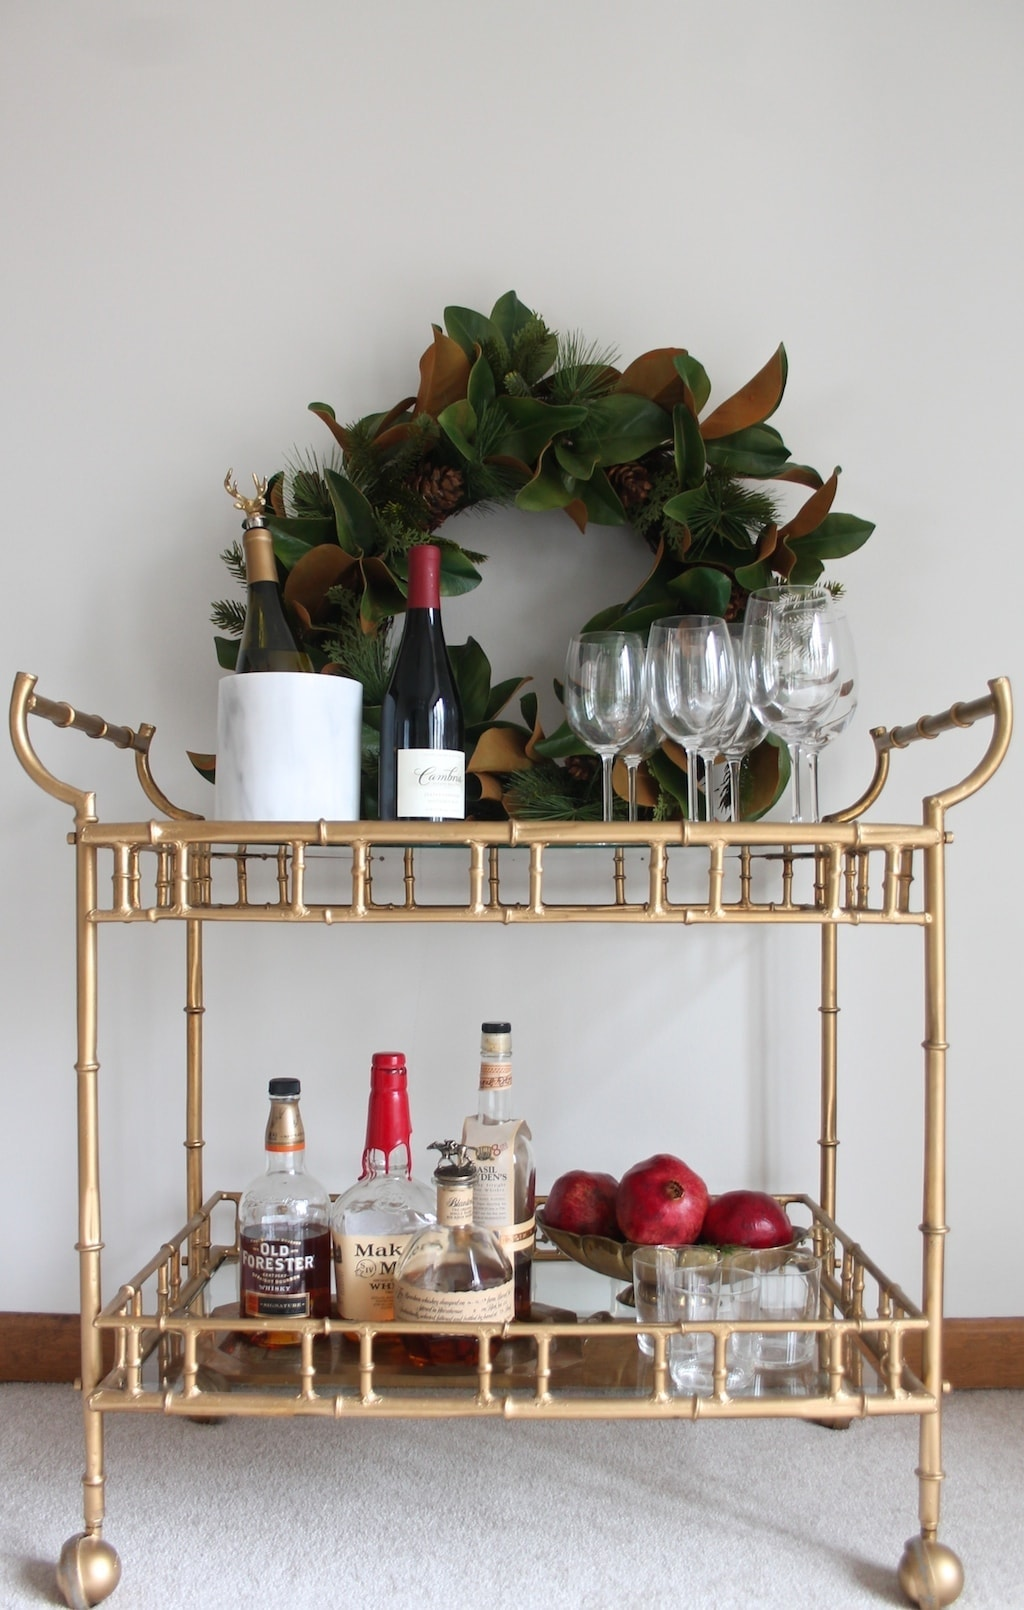 How To Style A Bar Cart For Any Season Julie Blanner